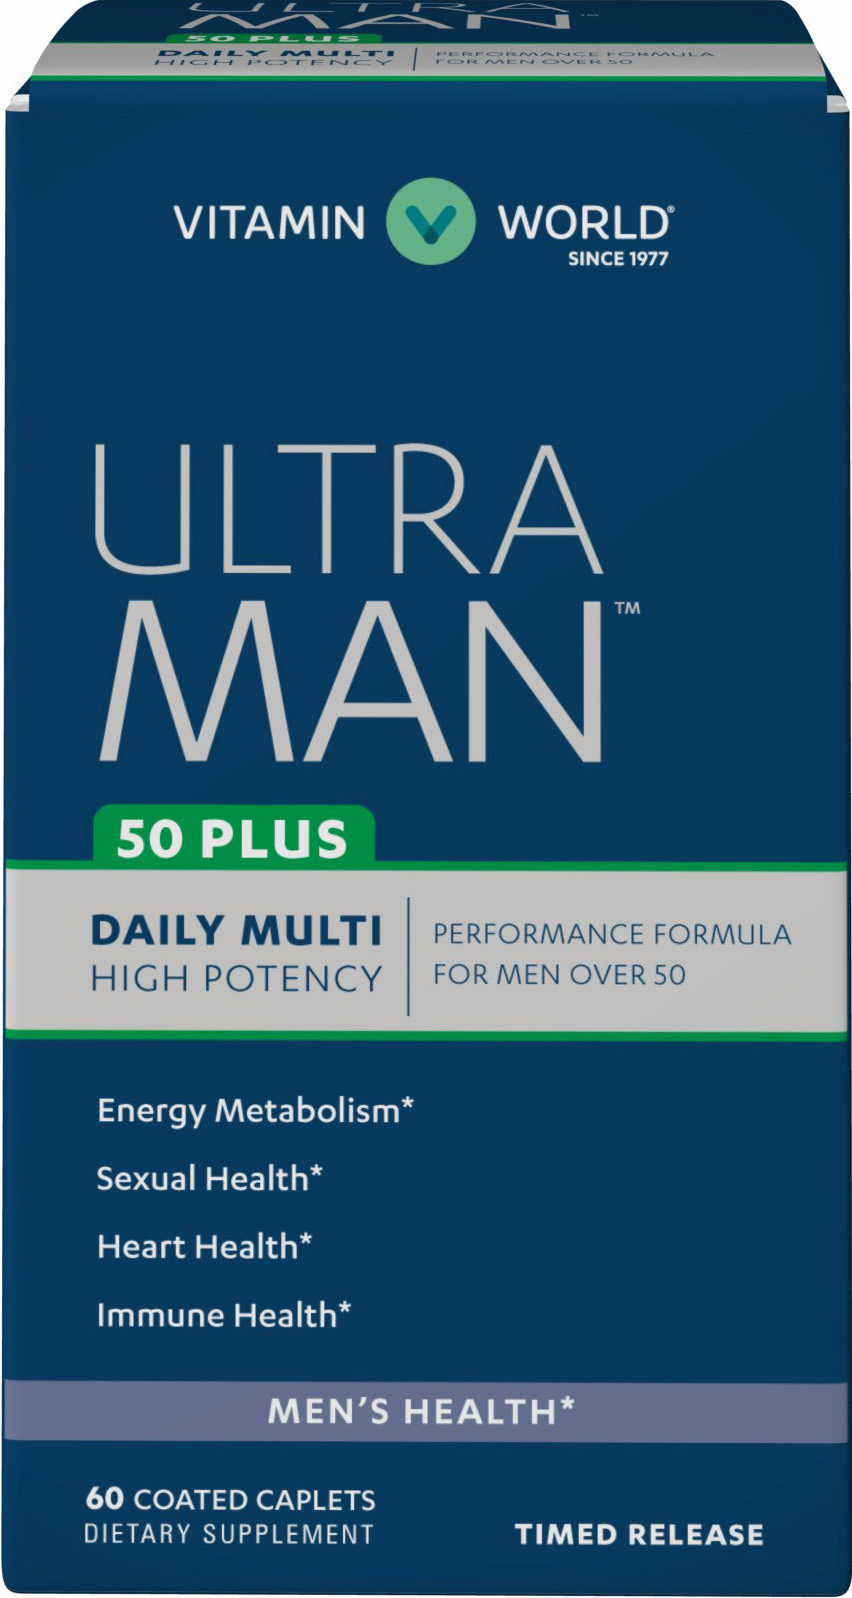 Ultra Man™ 50 Plus Daily Multivitamins VW.ULTRA MAN 50 PLUS.60.CPT